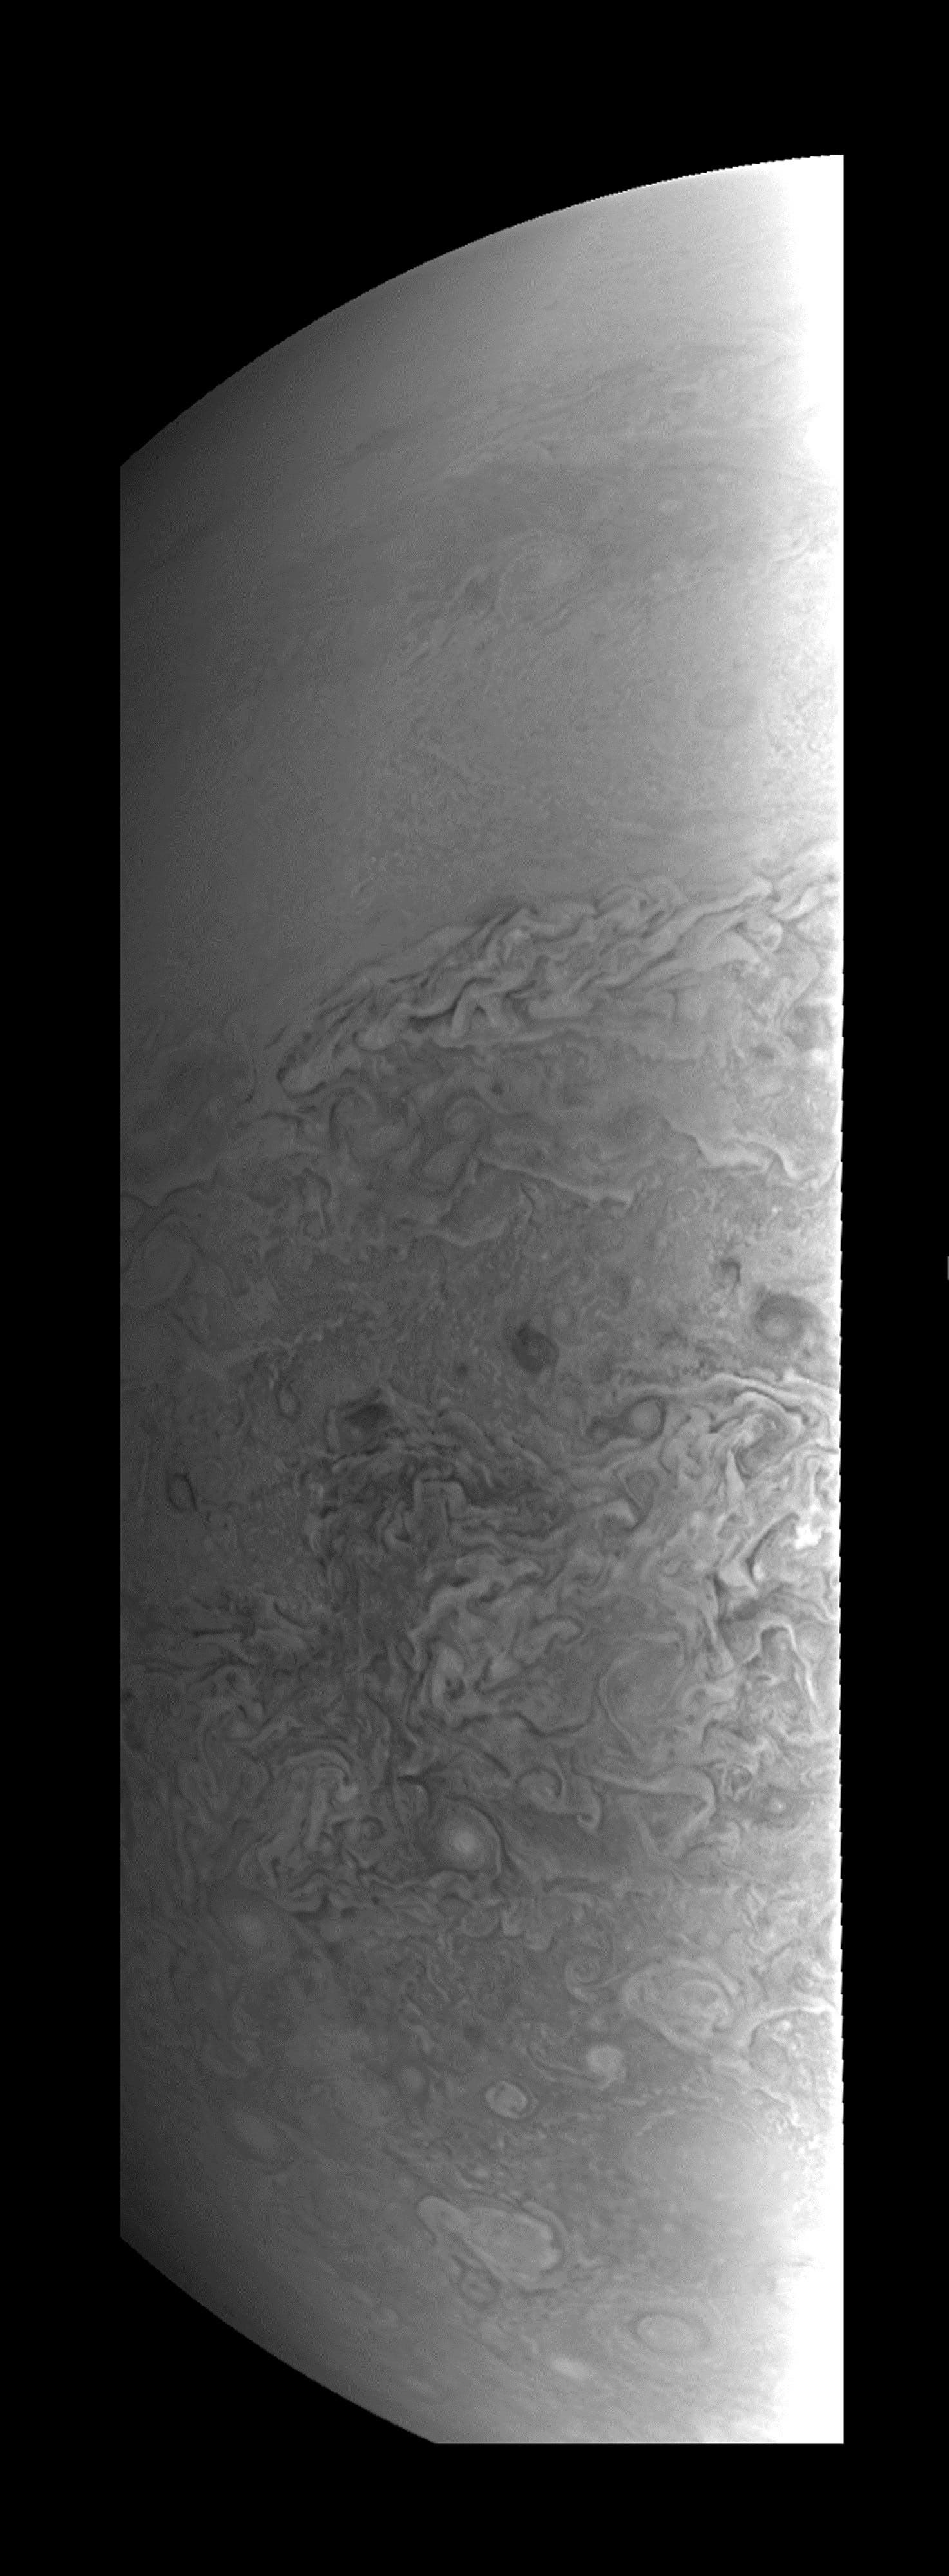 This image obtained from NASA provides a close-up view of Jupiter's southern hemisphere, as seen by NASA's Juno spacecraft on August 27, 2016. The JunoCam instrument captured this image with its red spectral filter when the spacecraft was about 23,600 miles (38,000 kilometers) above the cloud tops.  HO / NASA / AFP